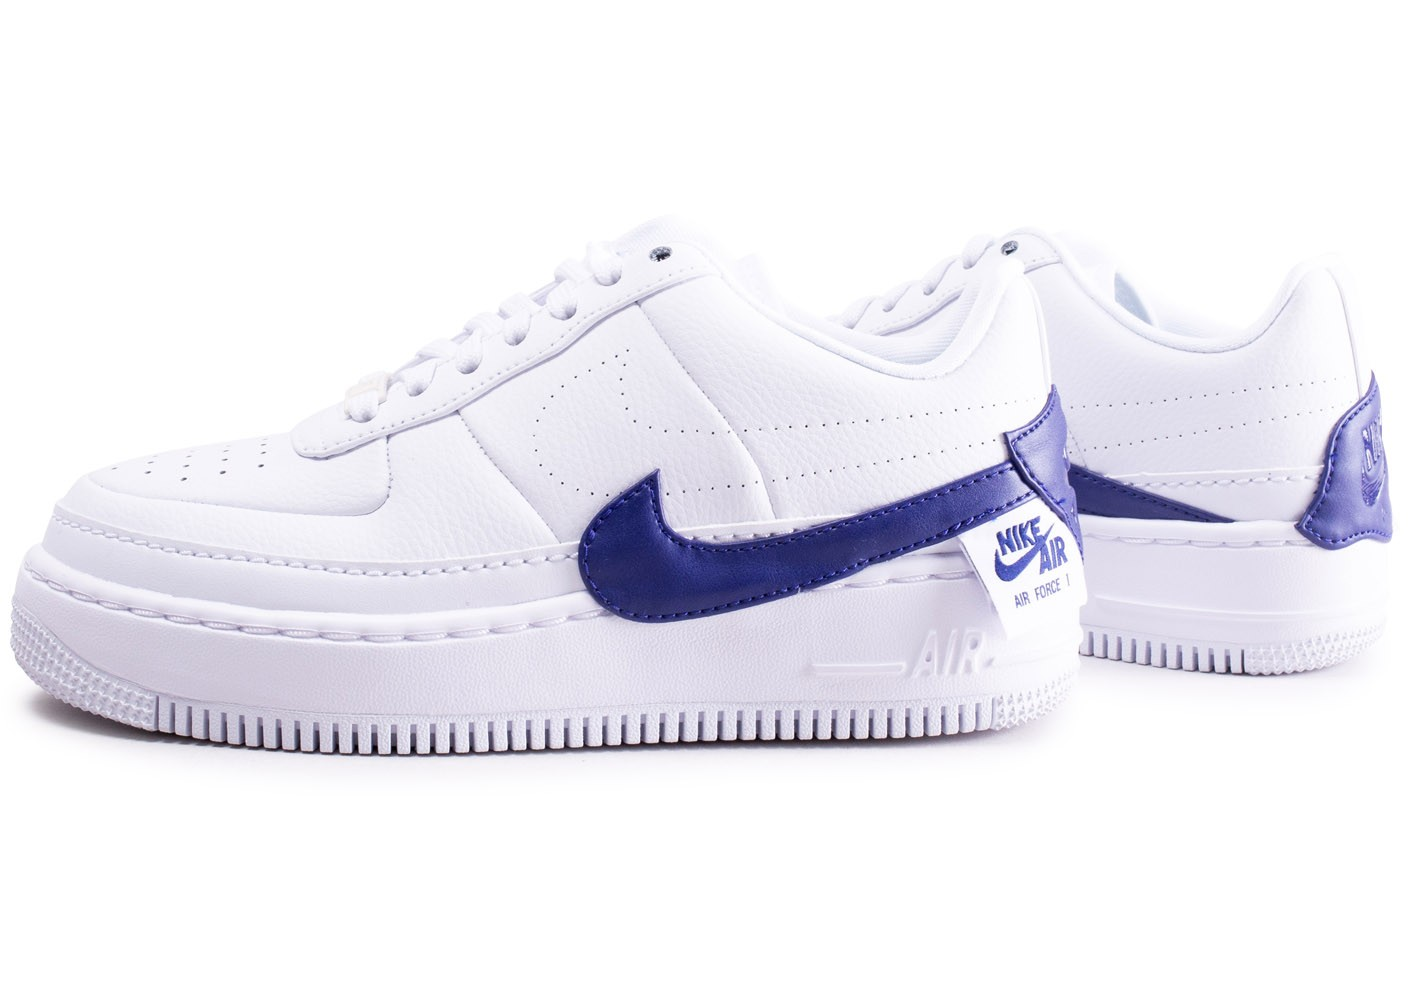 Nike Air Force 1 Jester XX blanc et violet femme - Chaussures ...